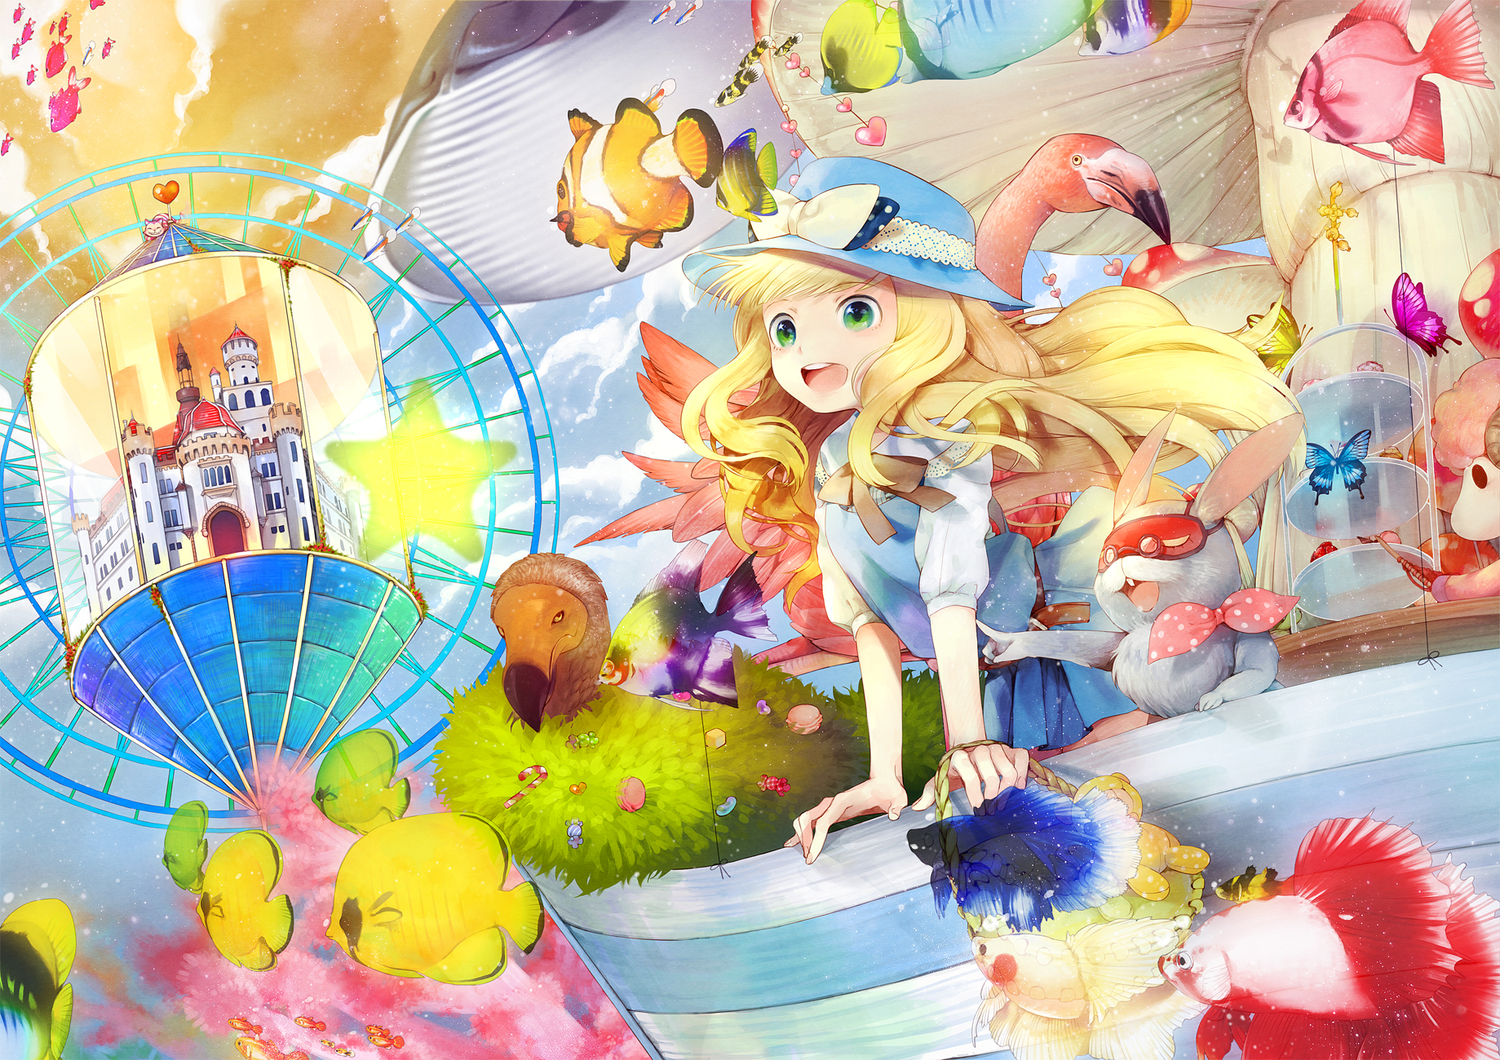 alice_(wonderland) alice_in_wonderland animal bird blonde_hair bow bunny butterfly cherry_blossoms cheshire_cat clouds dress fish food glasses green_eyes hakusai hat long_hair stars